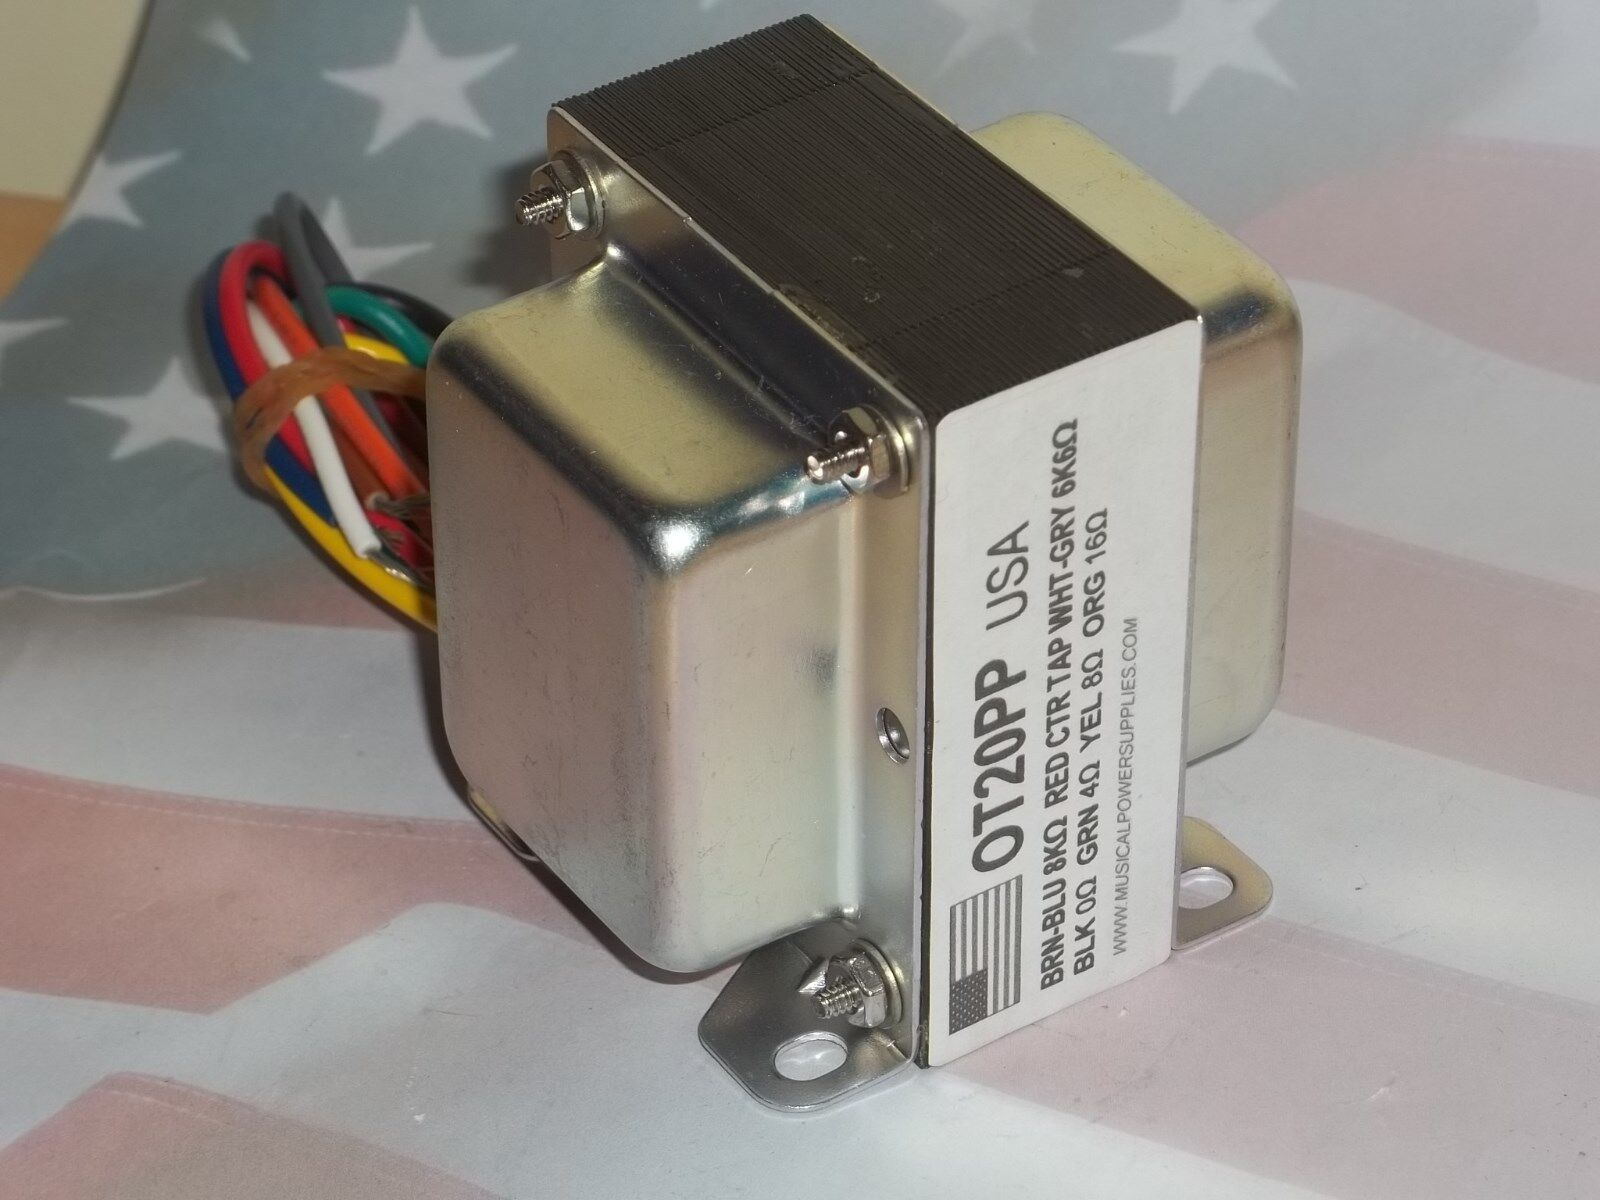 OT20PP (USA) Output transformer VC87 Covers 25VA & 8K/6K6 to 4/8/16 ohm |  Shopping Bin - Search eBay faster